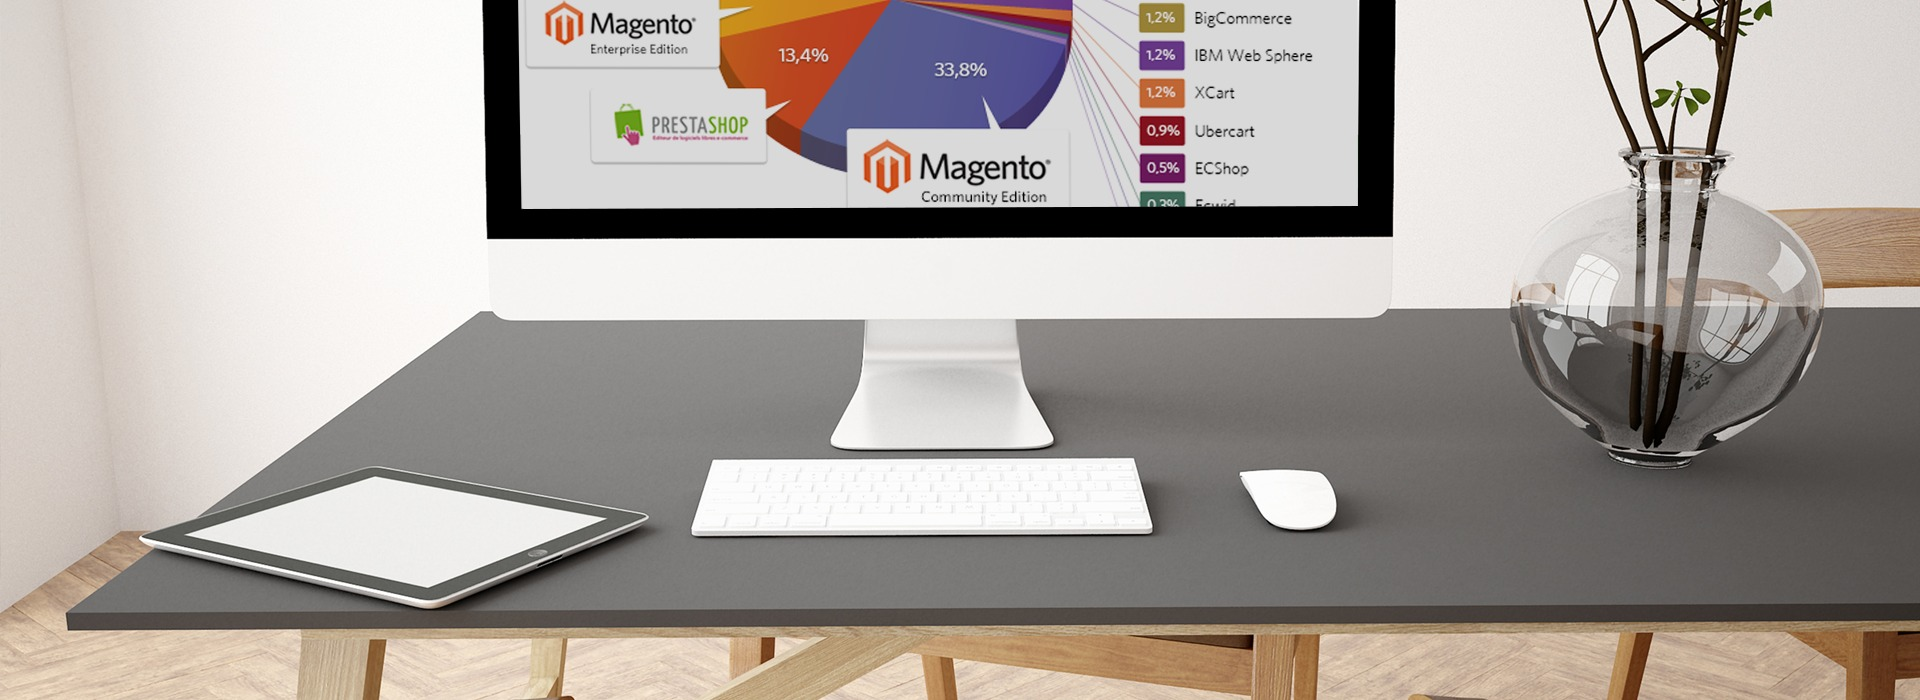 eCommerce Comparison | Speroteck Magento Support